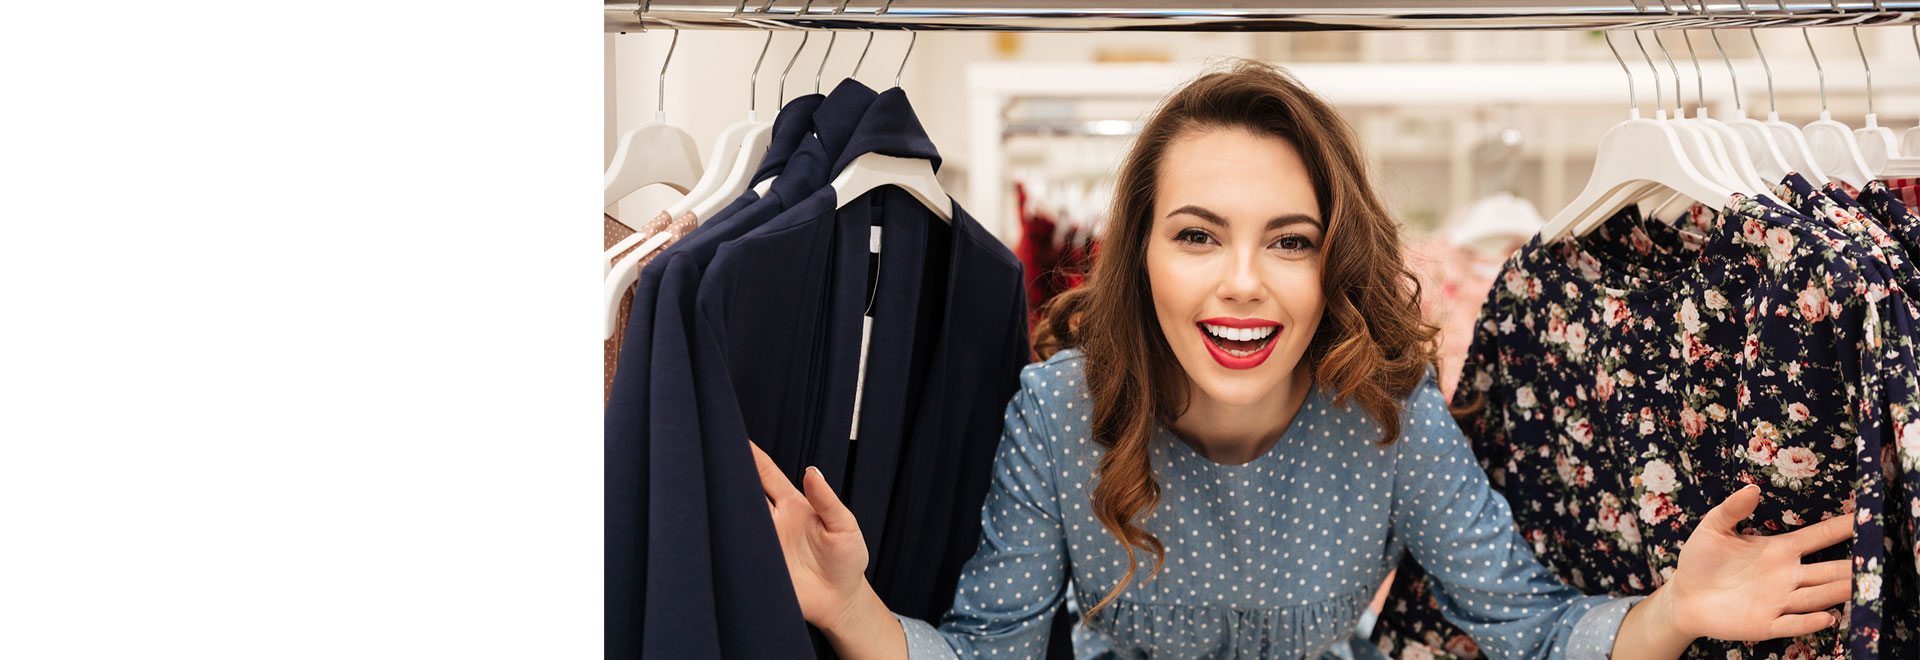 Lady appearing through clothes rail